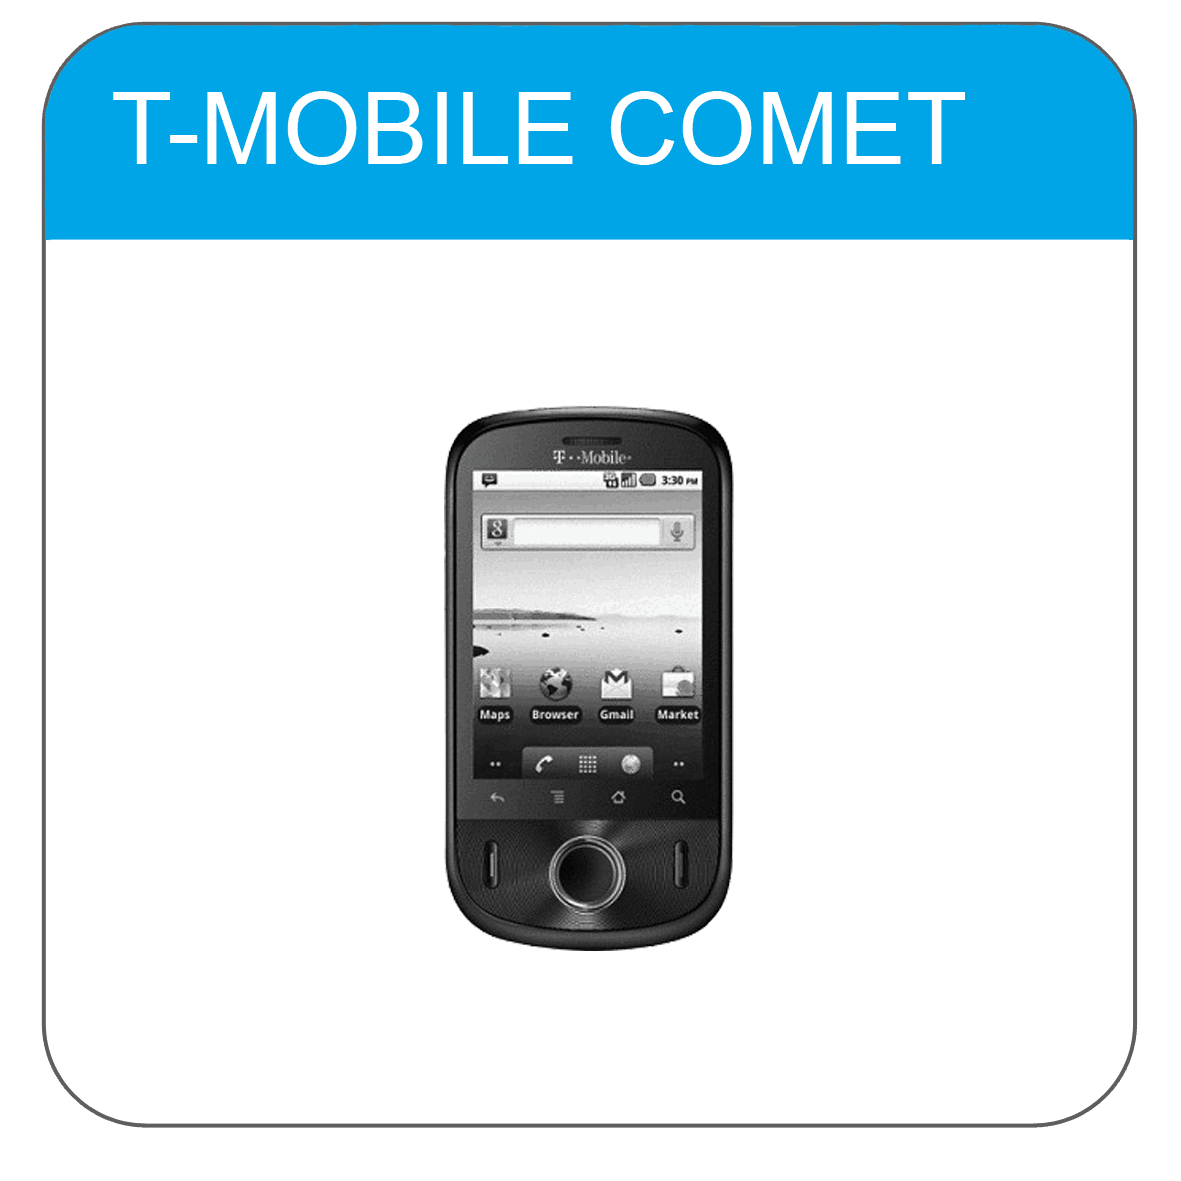 Huawei T-Mobile Comet